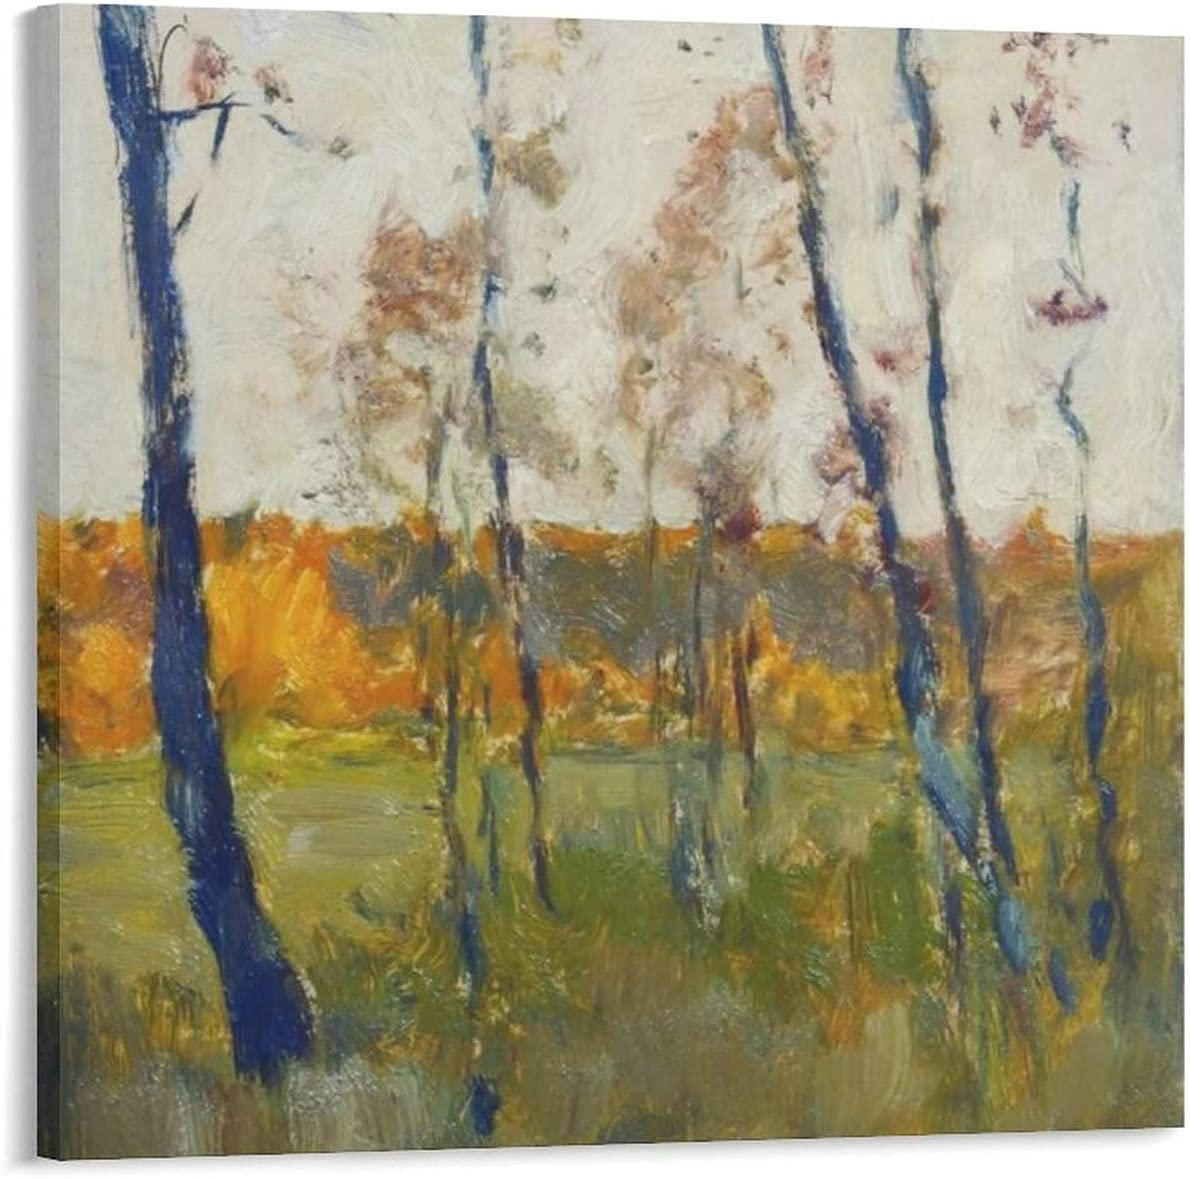 WEIYUE Oakland Mall Isaak Iliich Levitan Poster Classic Sketch Art Wall Factory outlet A 1